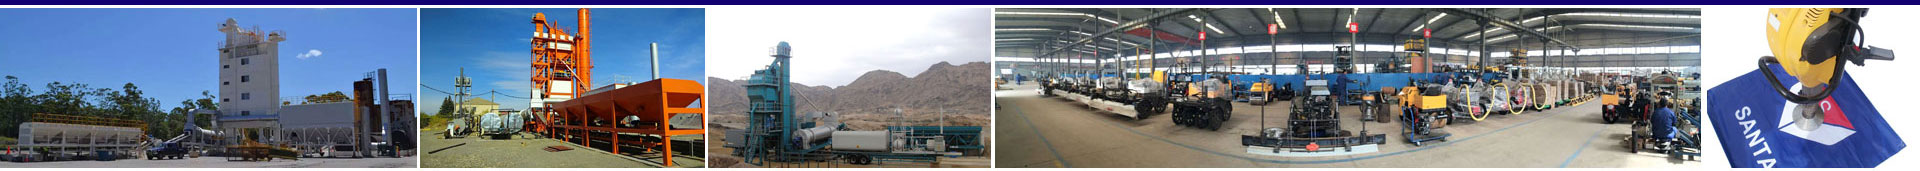 asphalt plant, batch mix asphalt plant, hot mix asphalt plant, mobile asphalt plant, portable asphalt plants